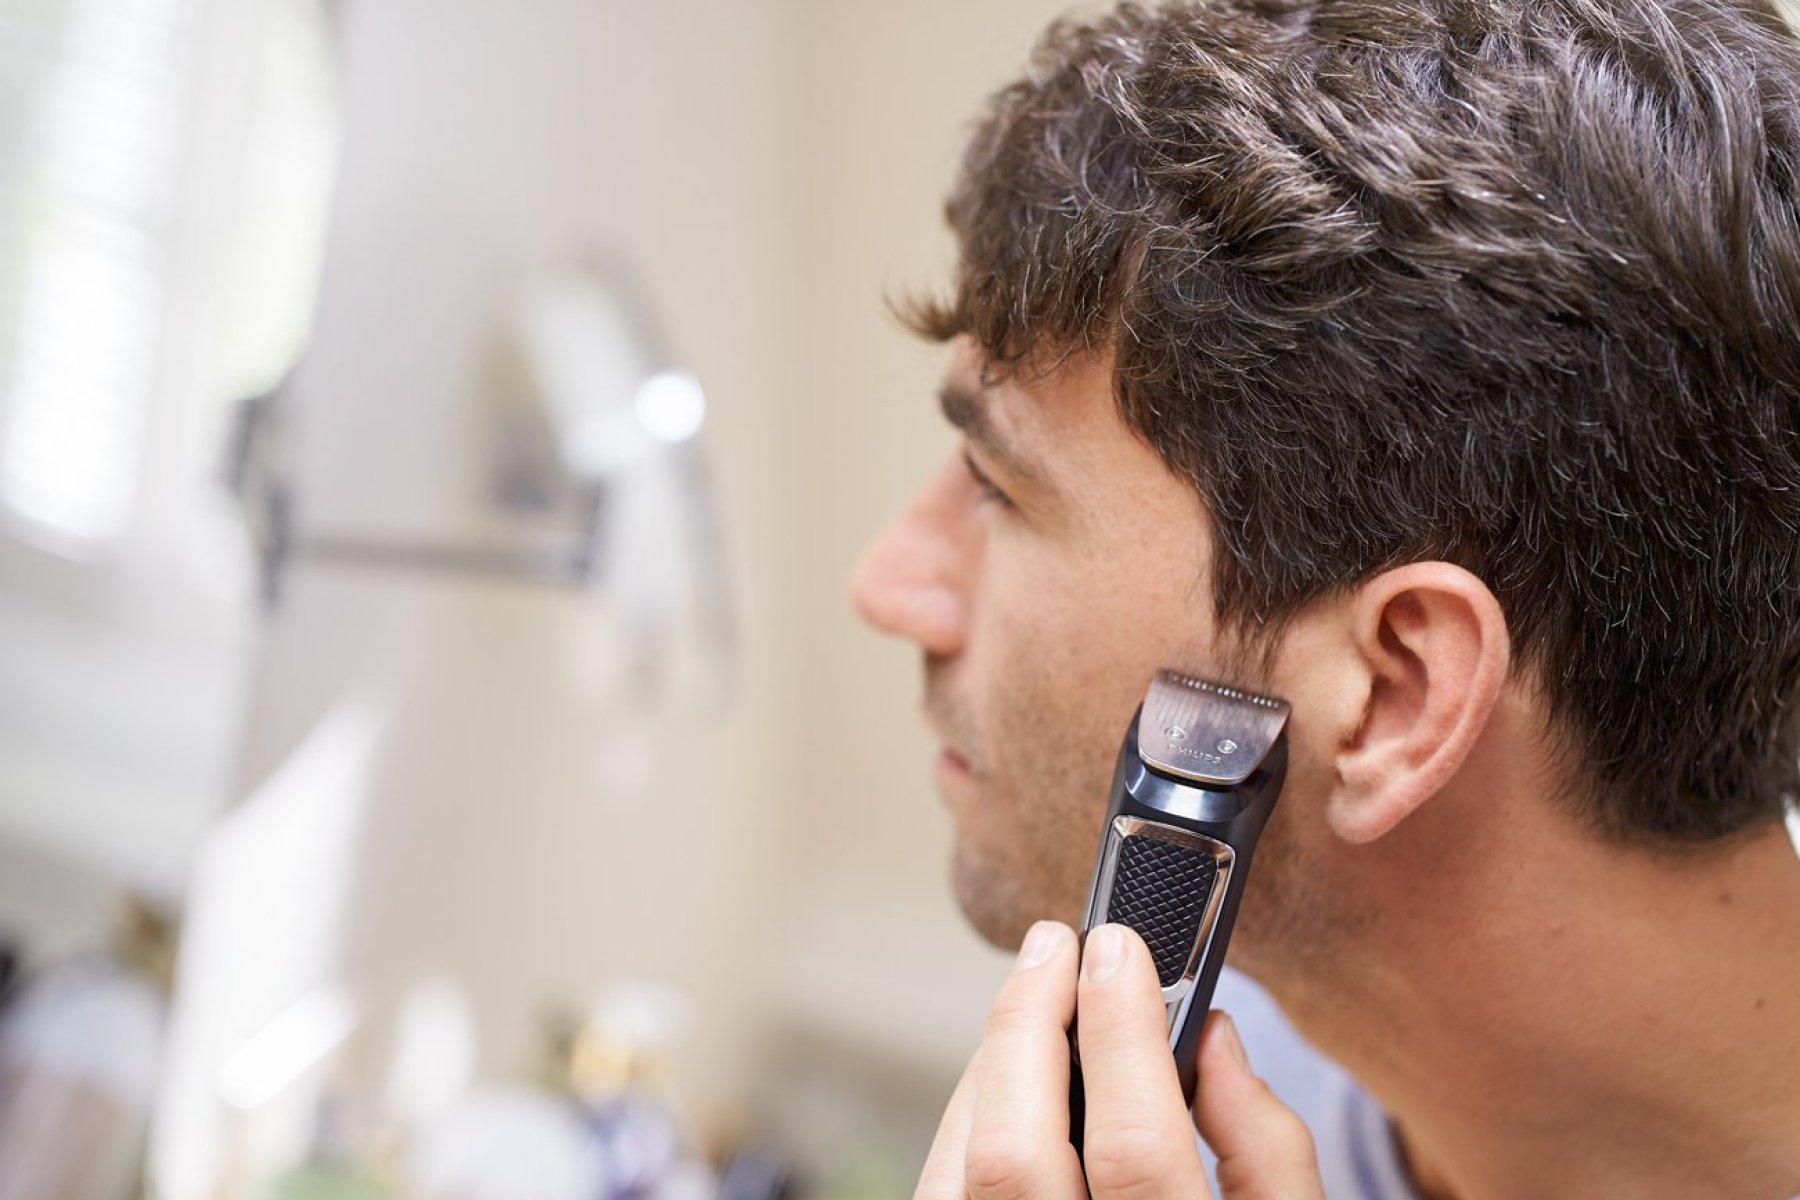 How to Cut Own Hair at Home: Best Home Haircut Kit, Clippers